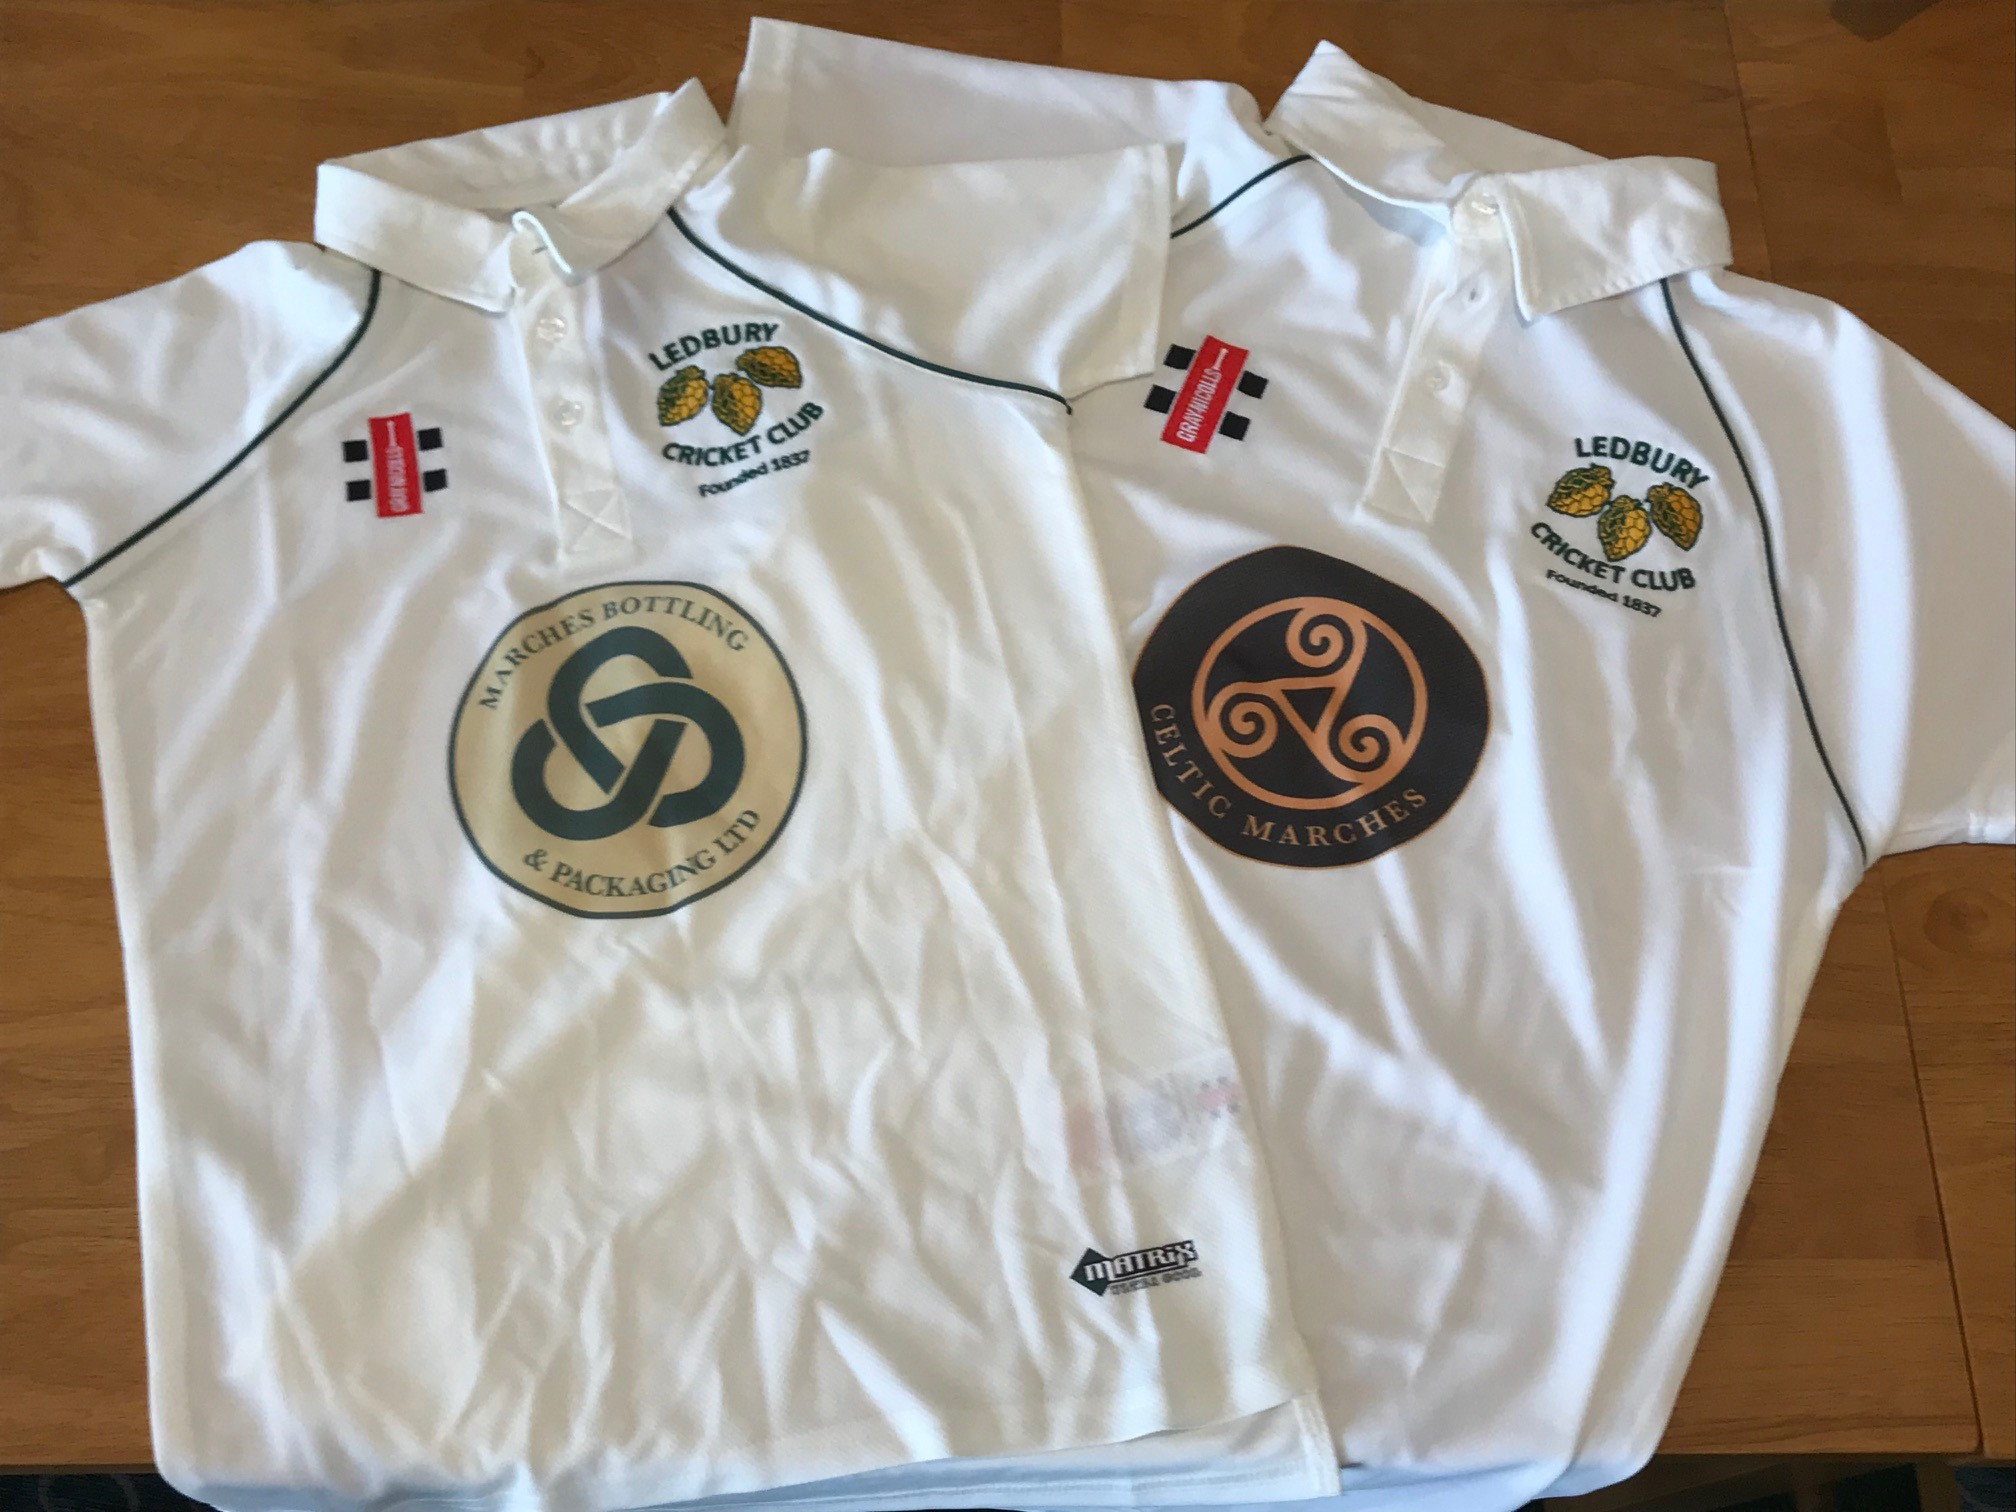 Ledbury Cricket Club Shirts